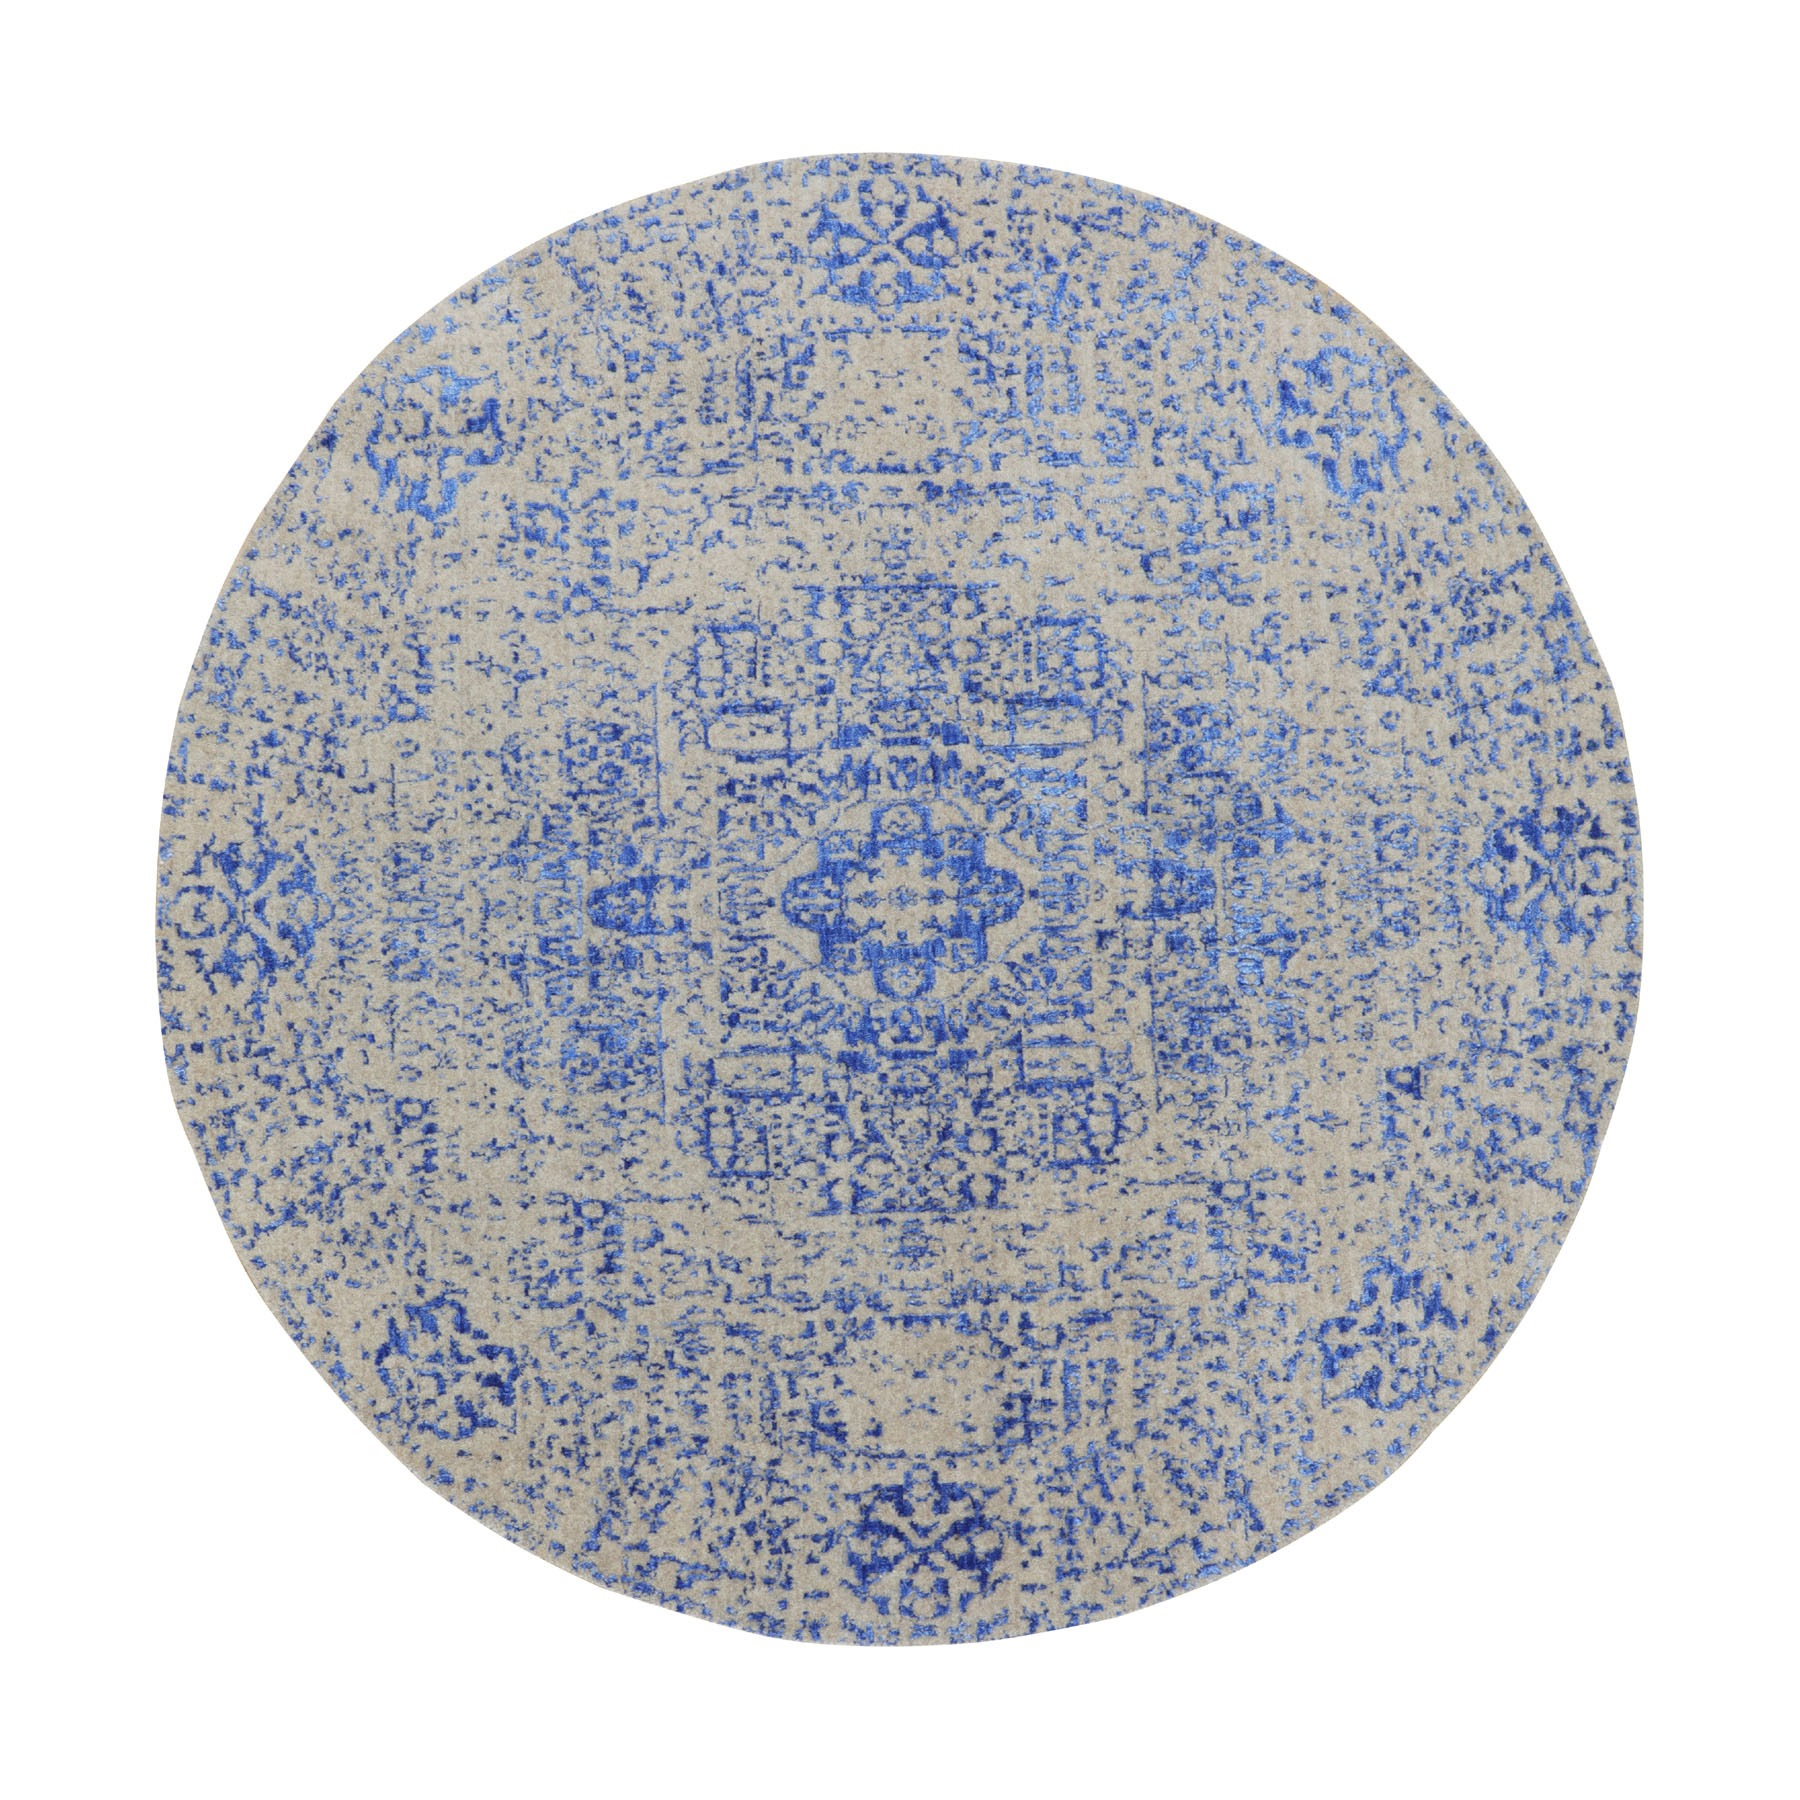 Intricate Collection Hand Loomed Blue Rug No: 01116246